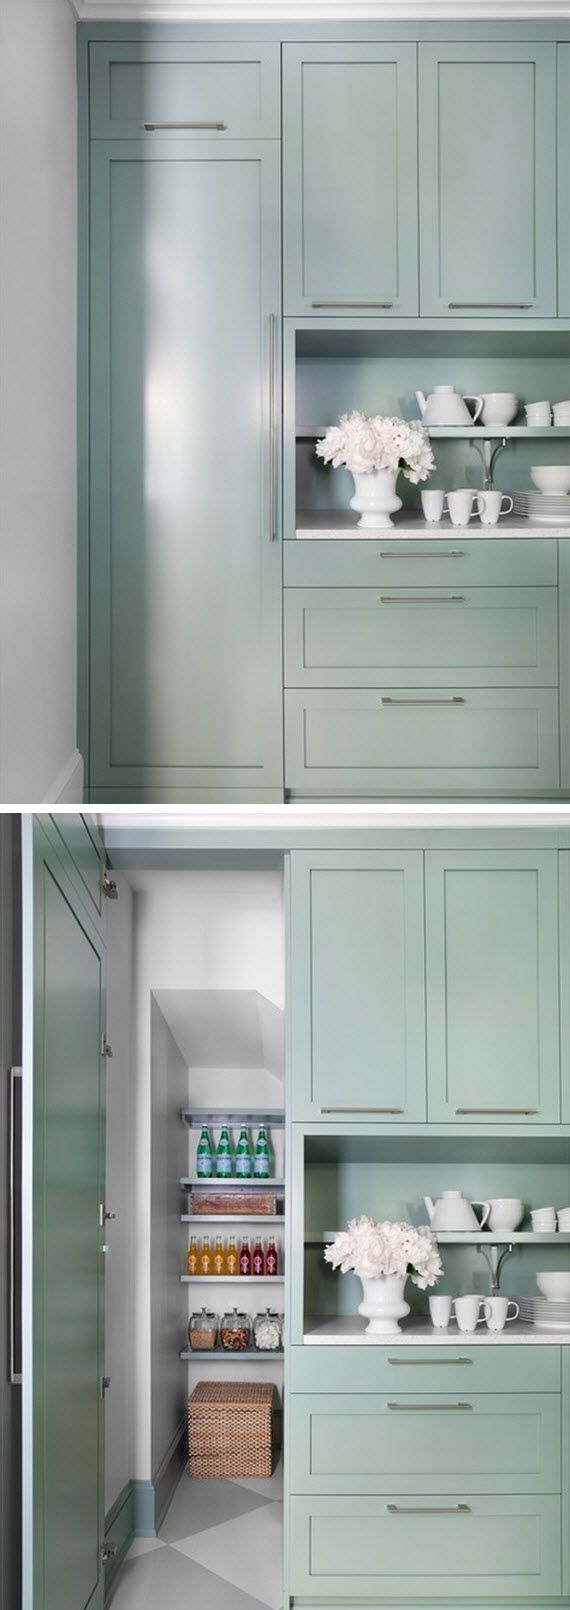 kitchen pantry under the stairs - brilliant use of space! #kitchens ...